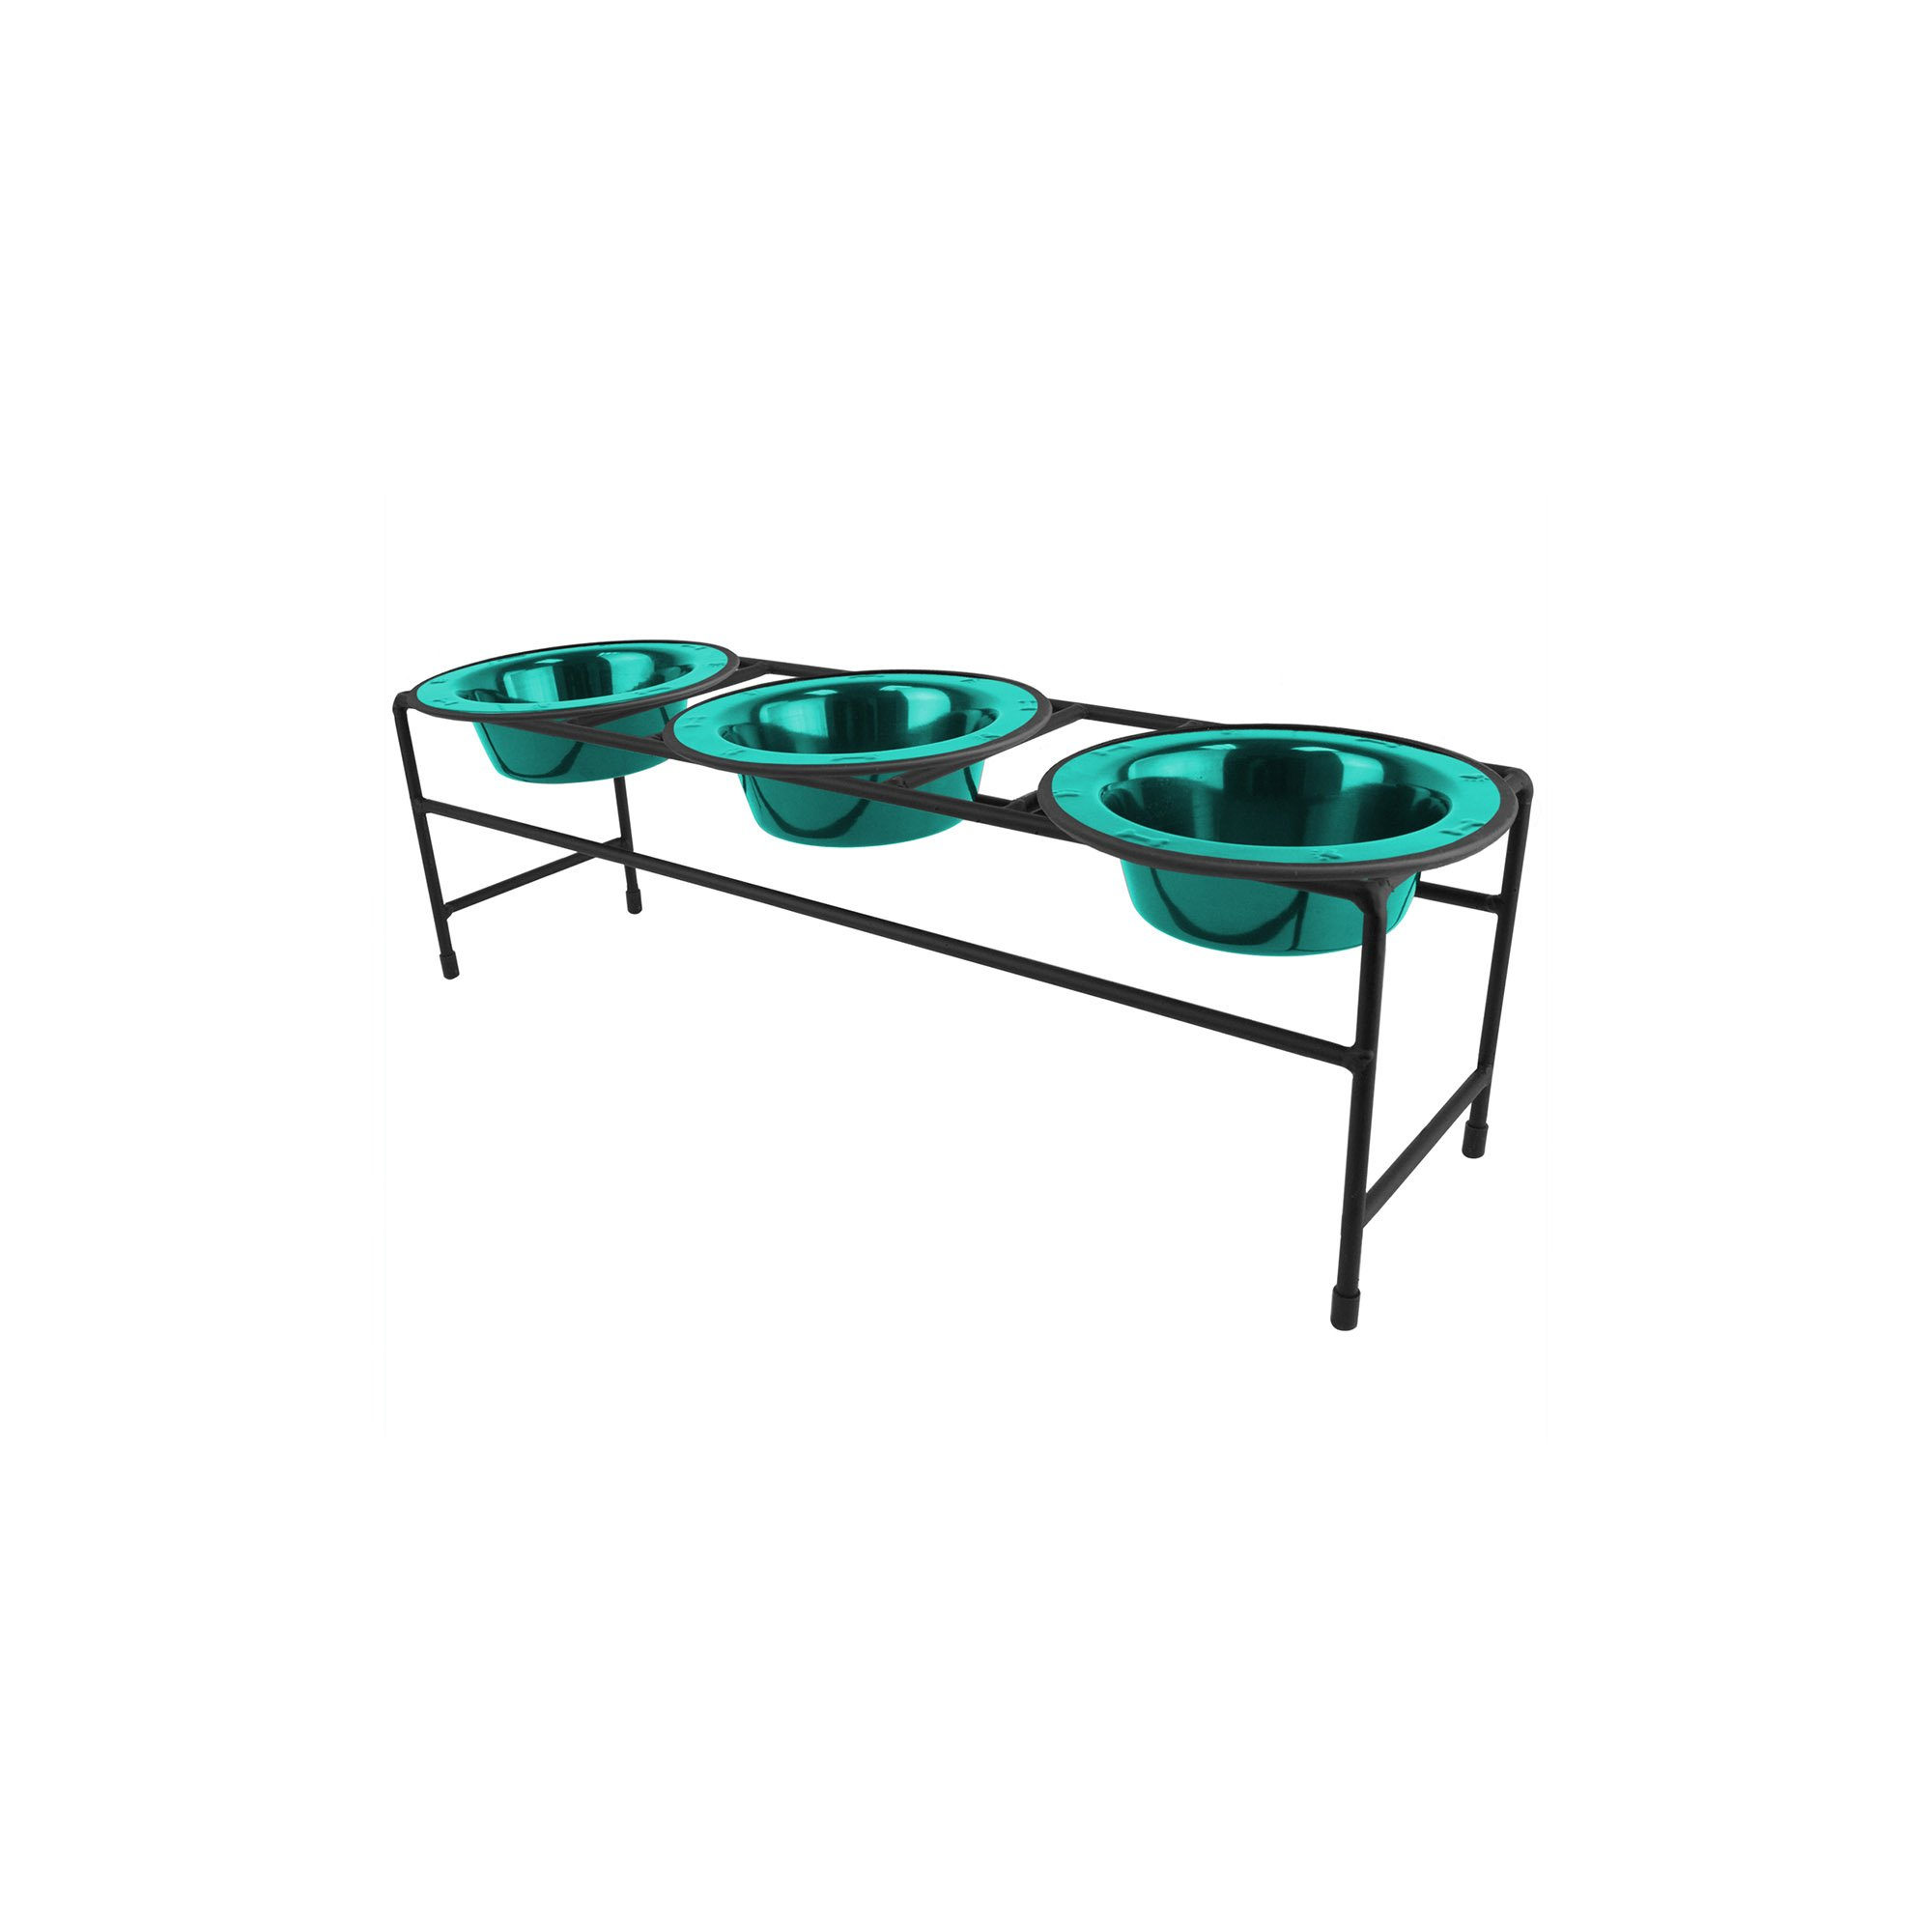 Platinum Pets Triple Diner Feeder with Stainless Steel Cat/Puppy Bowls, .75 cup/6 oz, Caribbean Teal